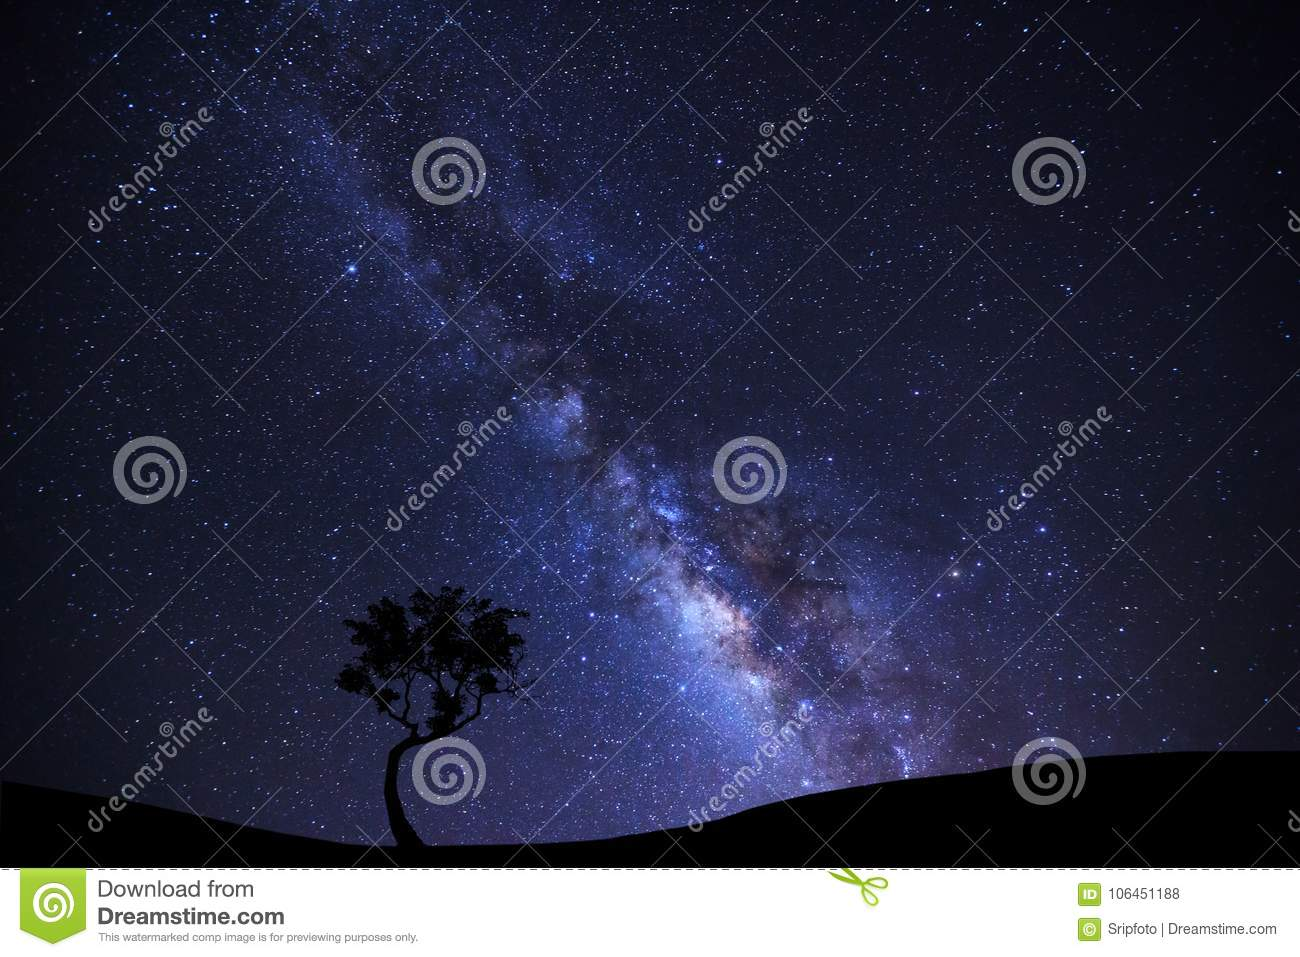 Landscape silhouette of tree with milky way galaxy and space dust in the universe, Night starry sky with stars